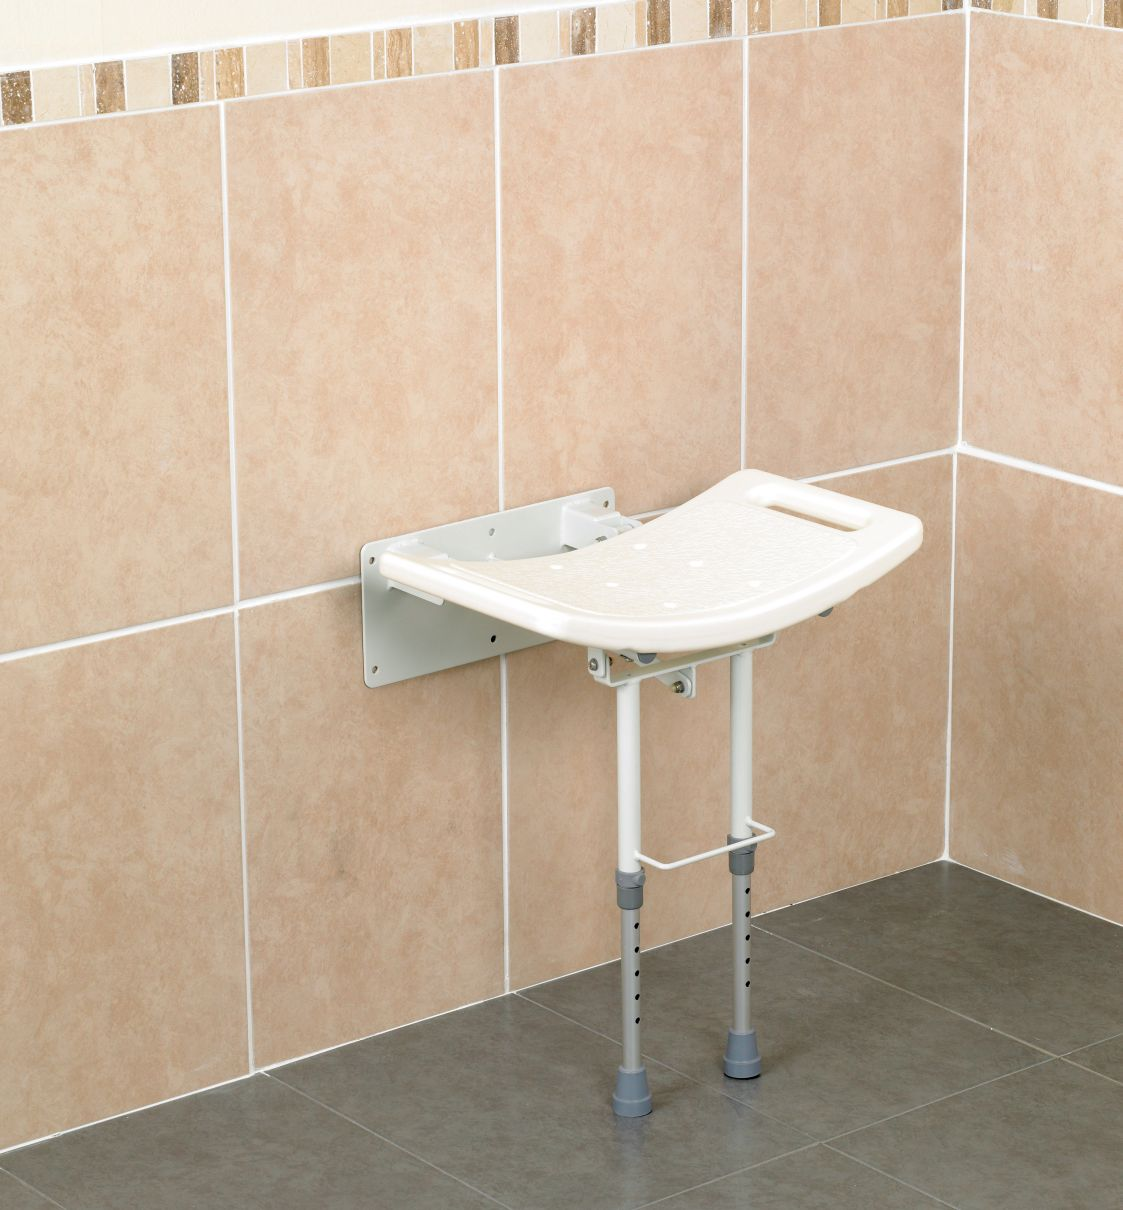 Shower Seat Wall Mounted With Adjustable Legs Aluminium